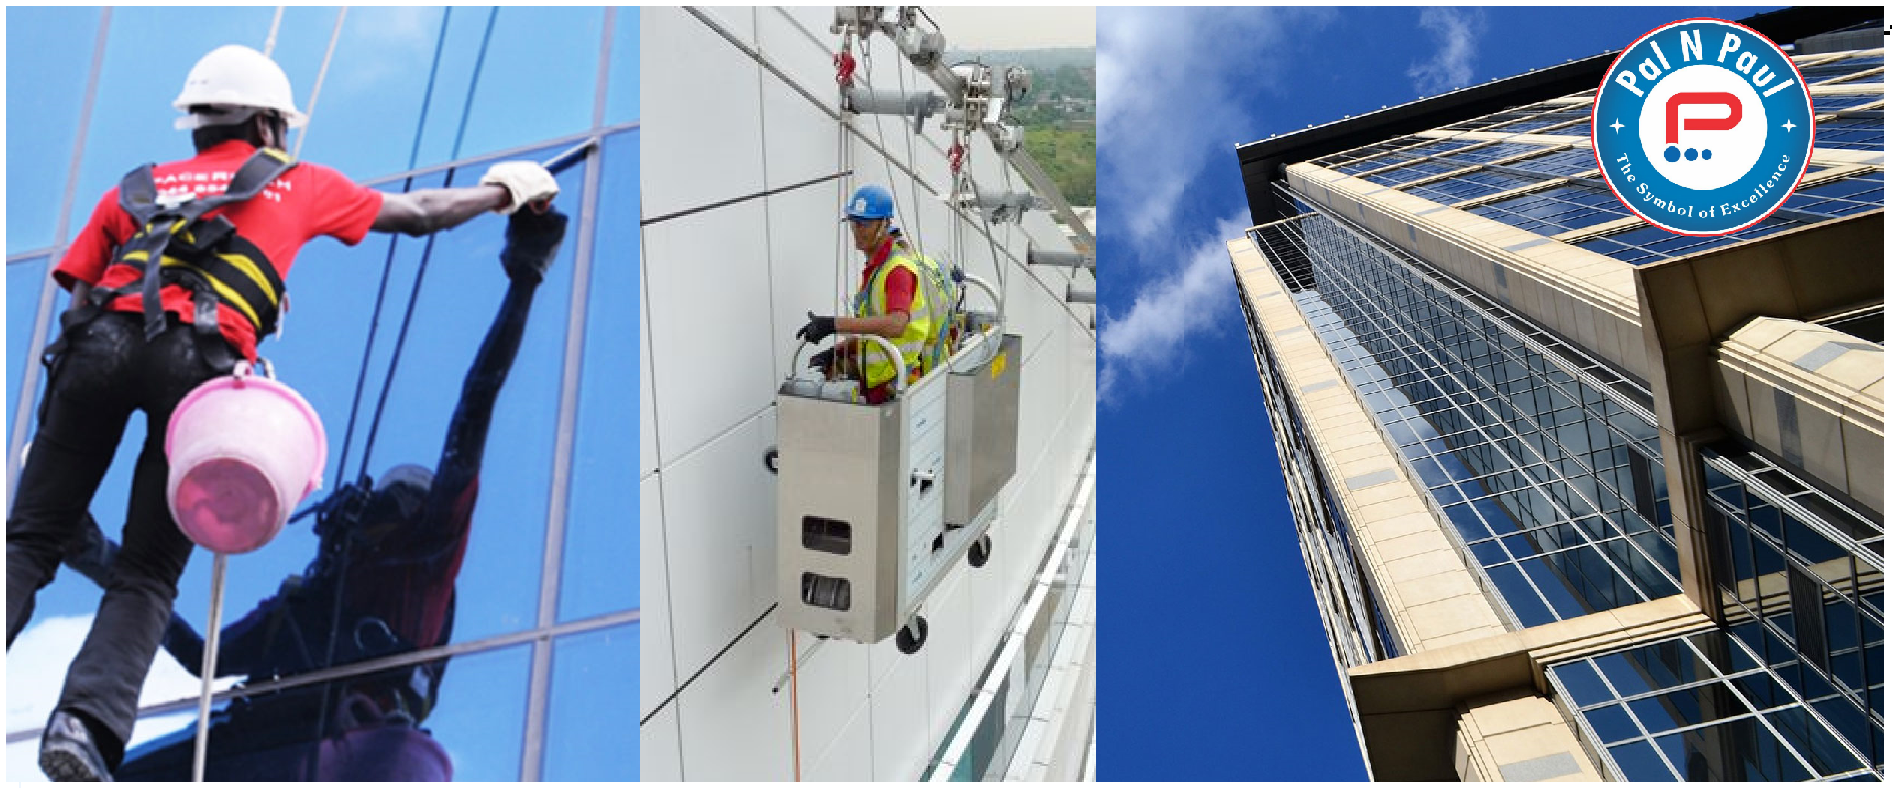 The remarkable new technology in building facade cleaning